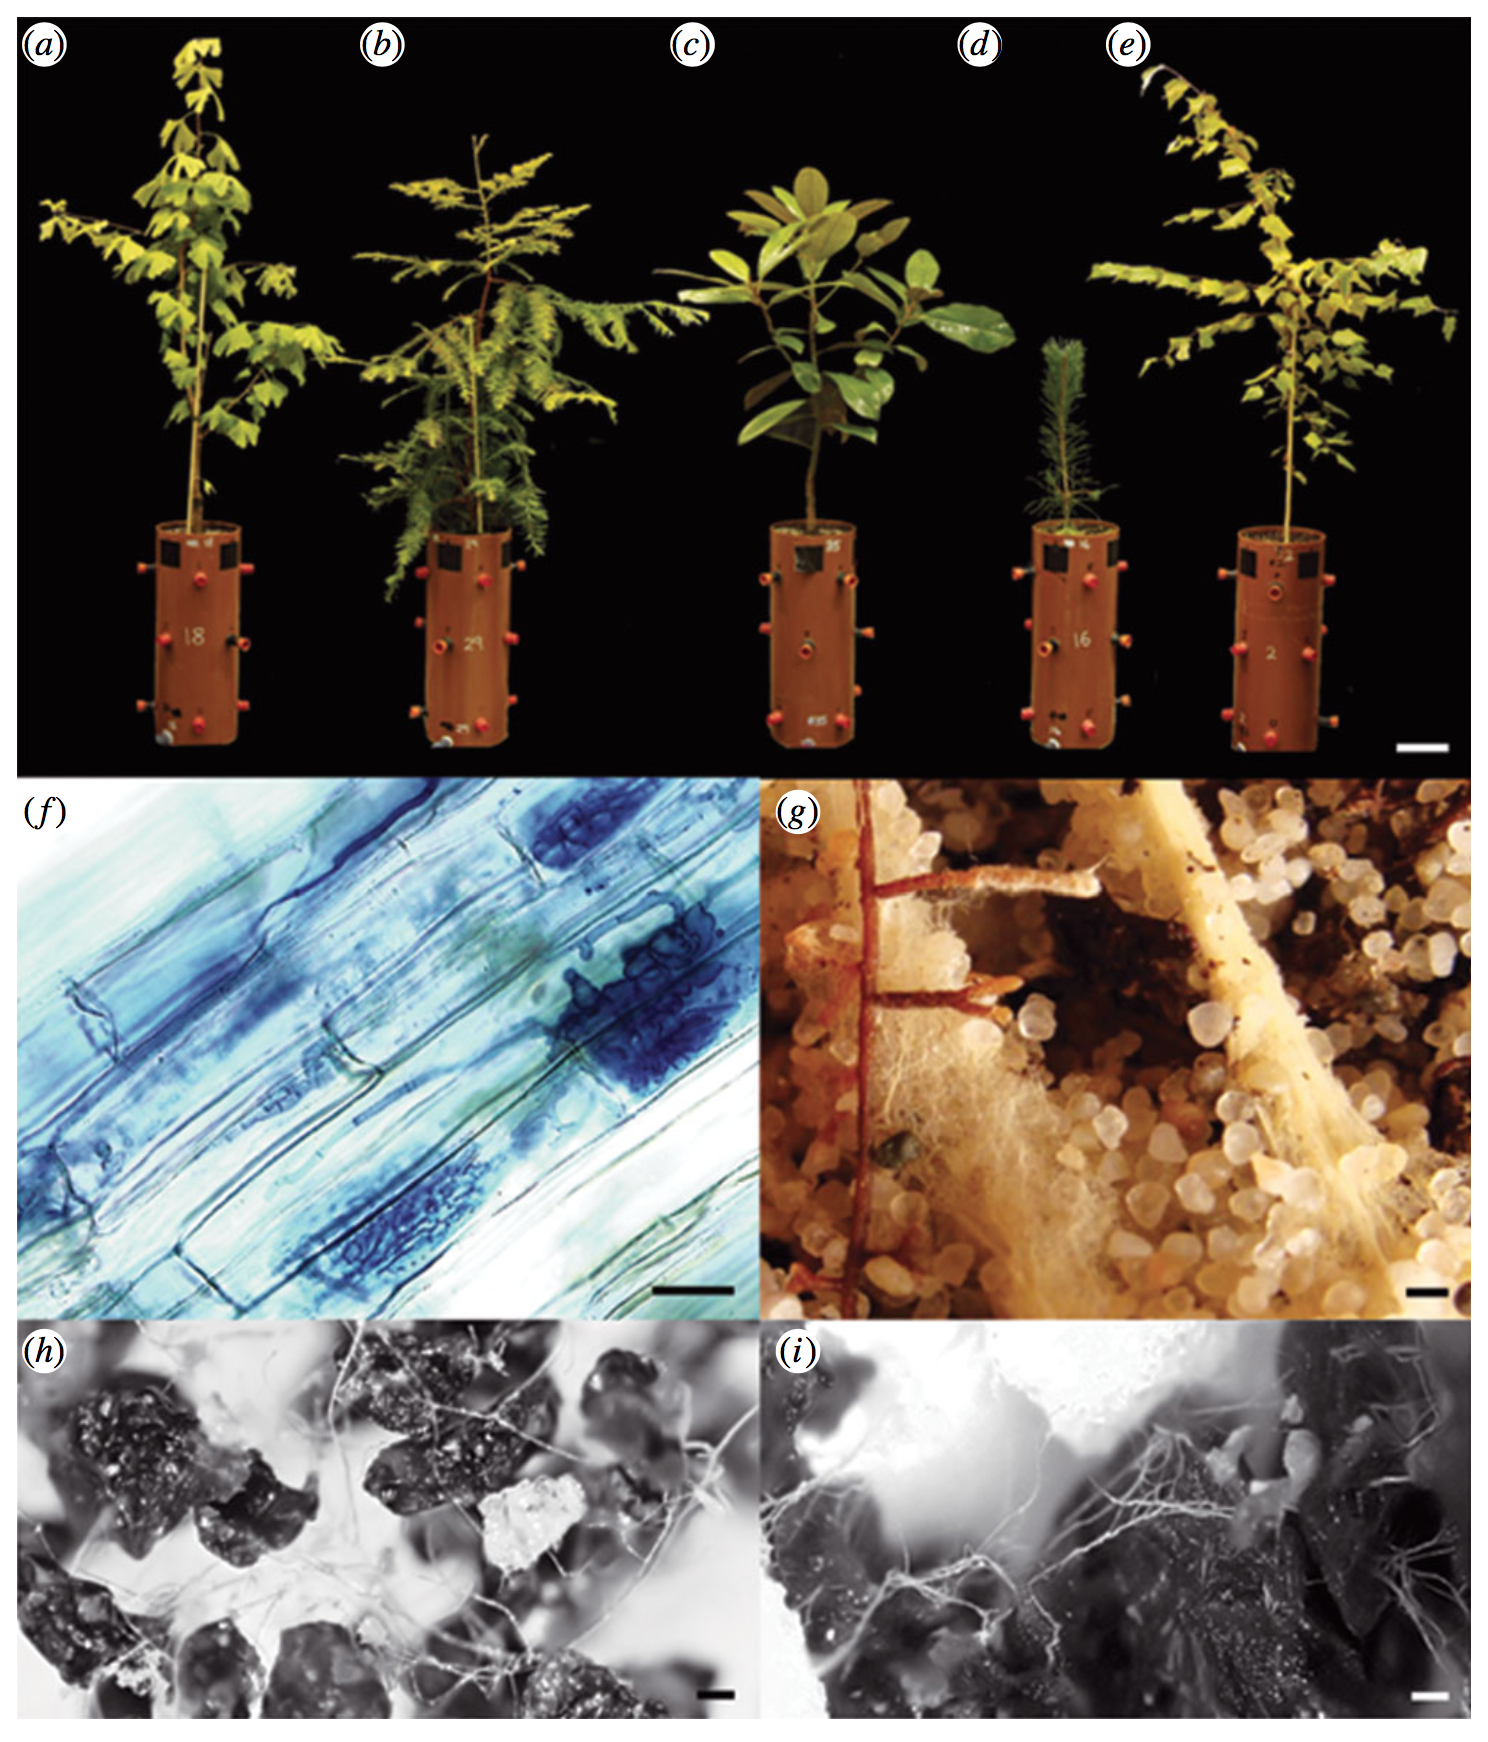 Three AMF hosts,  Ginkgo biloba ,  Sequoia sempervirens  and  Magnolia grandiflora  followed by two ECM hosts,  Pinus sylvestris  and  Betula pendula . (f) AMF structures. (g) ECM rootlets.  Quirk et al. 2014 .